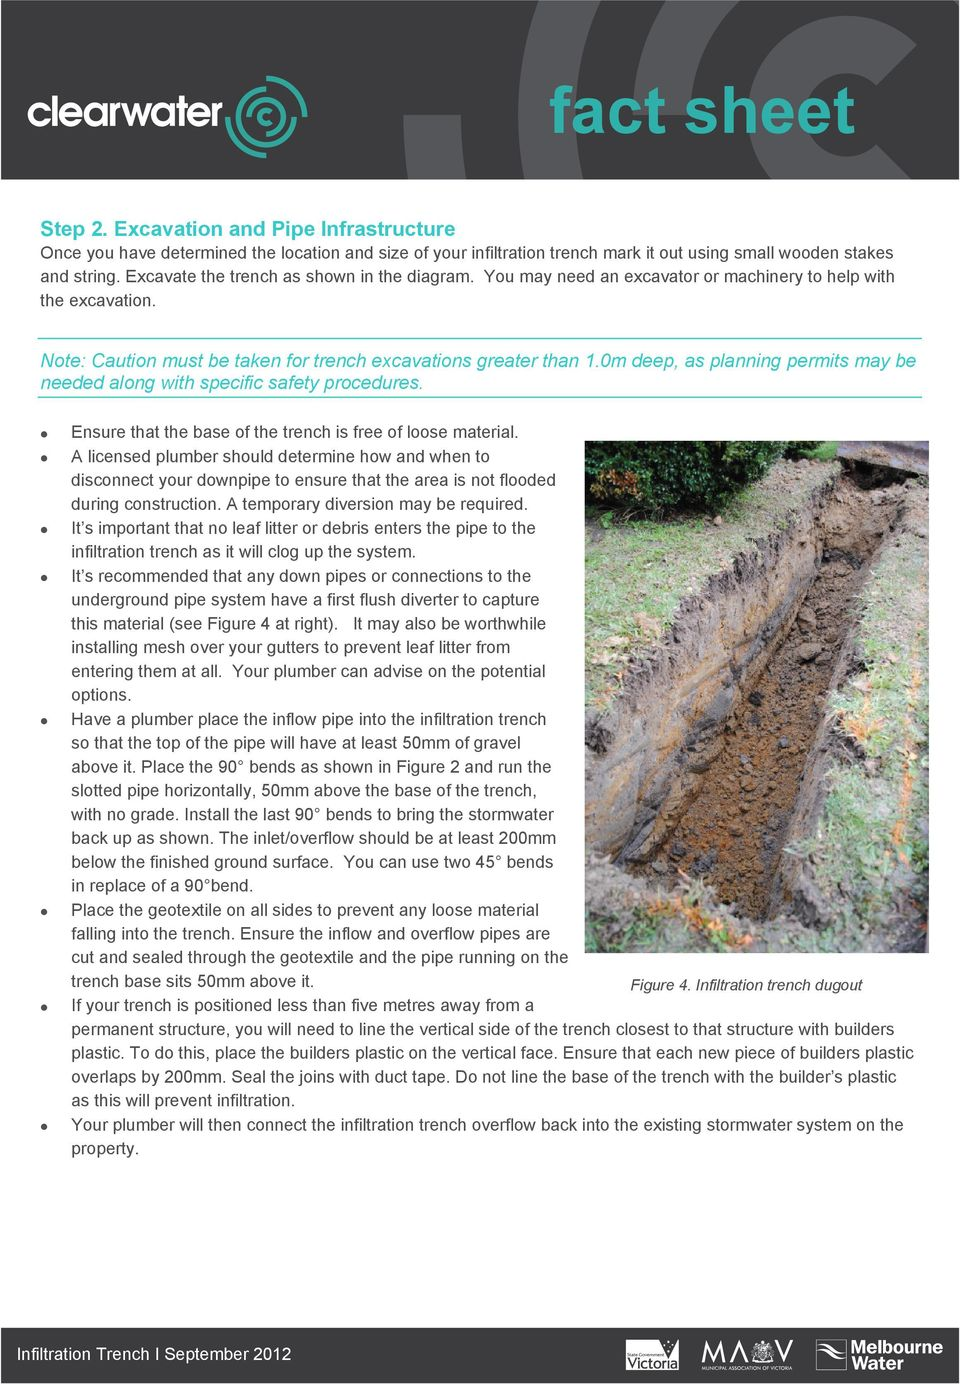 0m deep, as planning permits may be needed along with specific safety procedures. Ensure that the base of the trench is free of loose material.